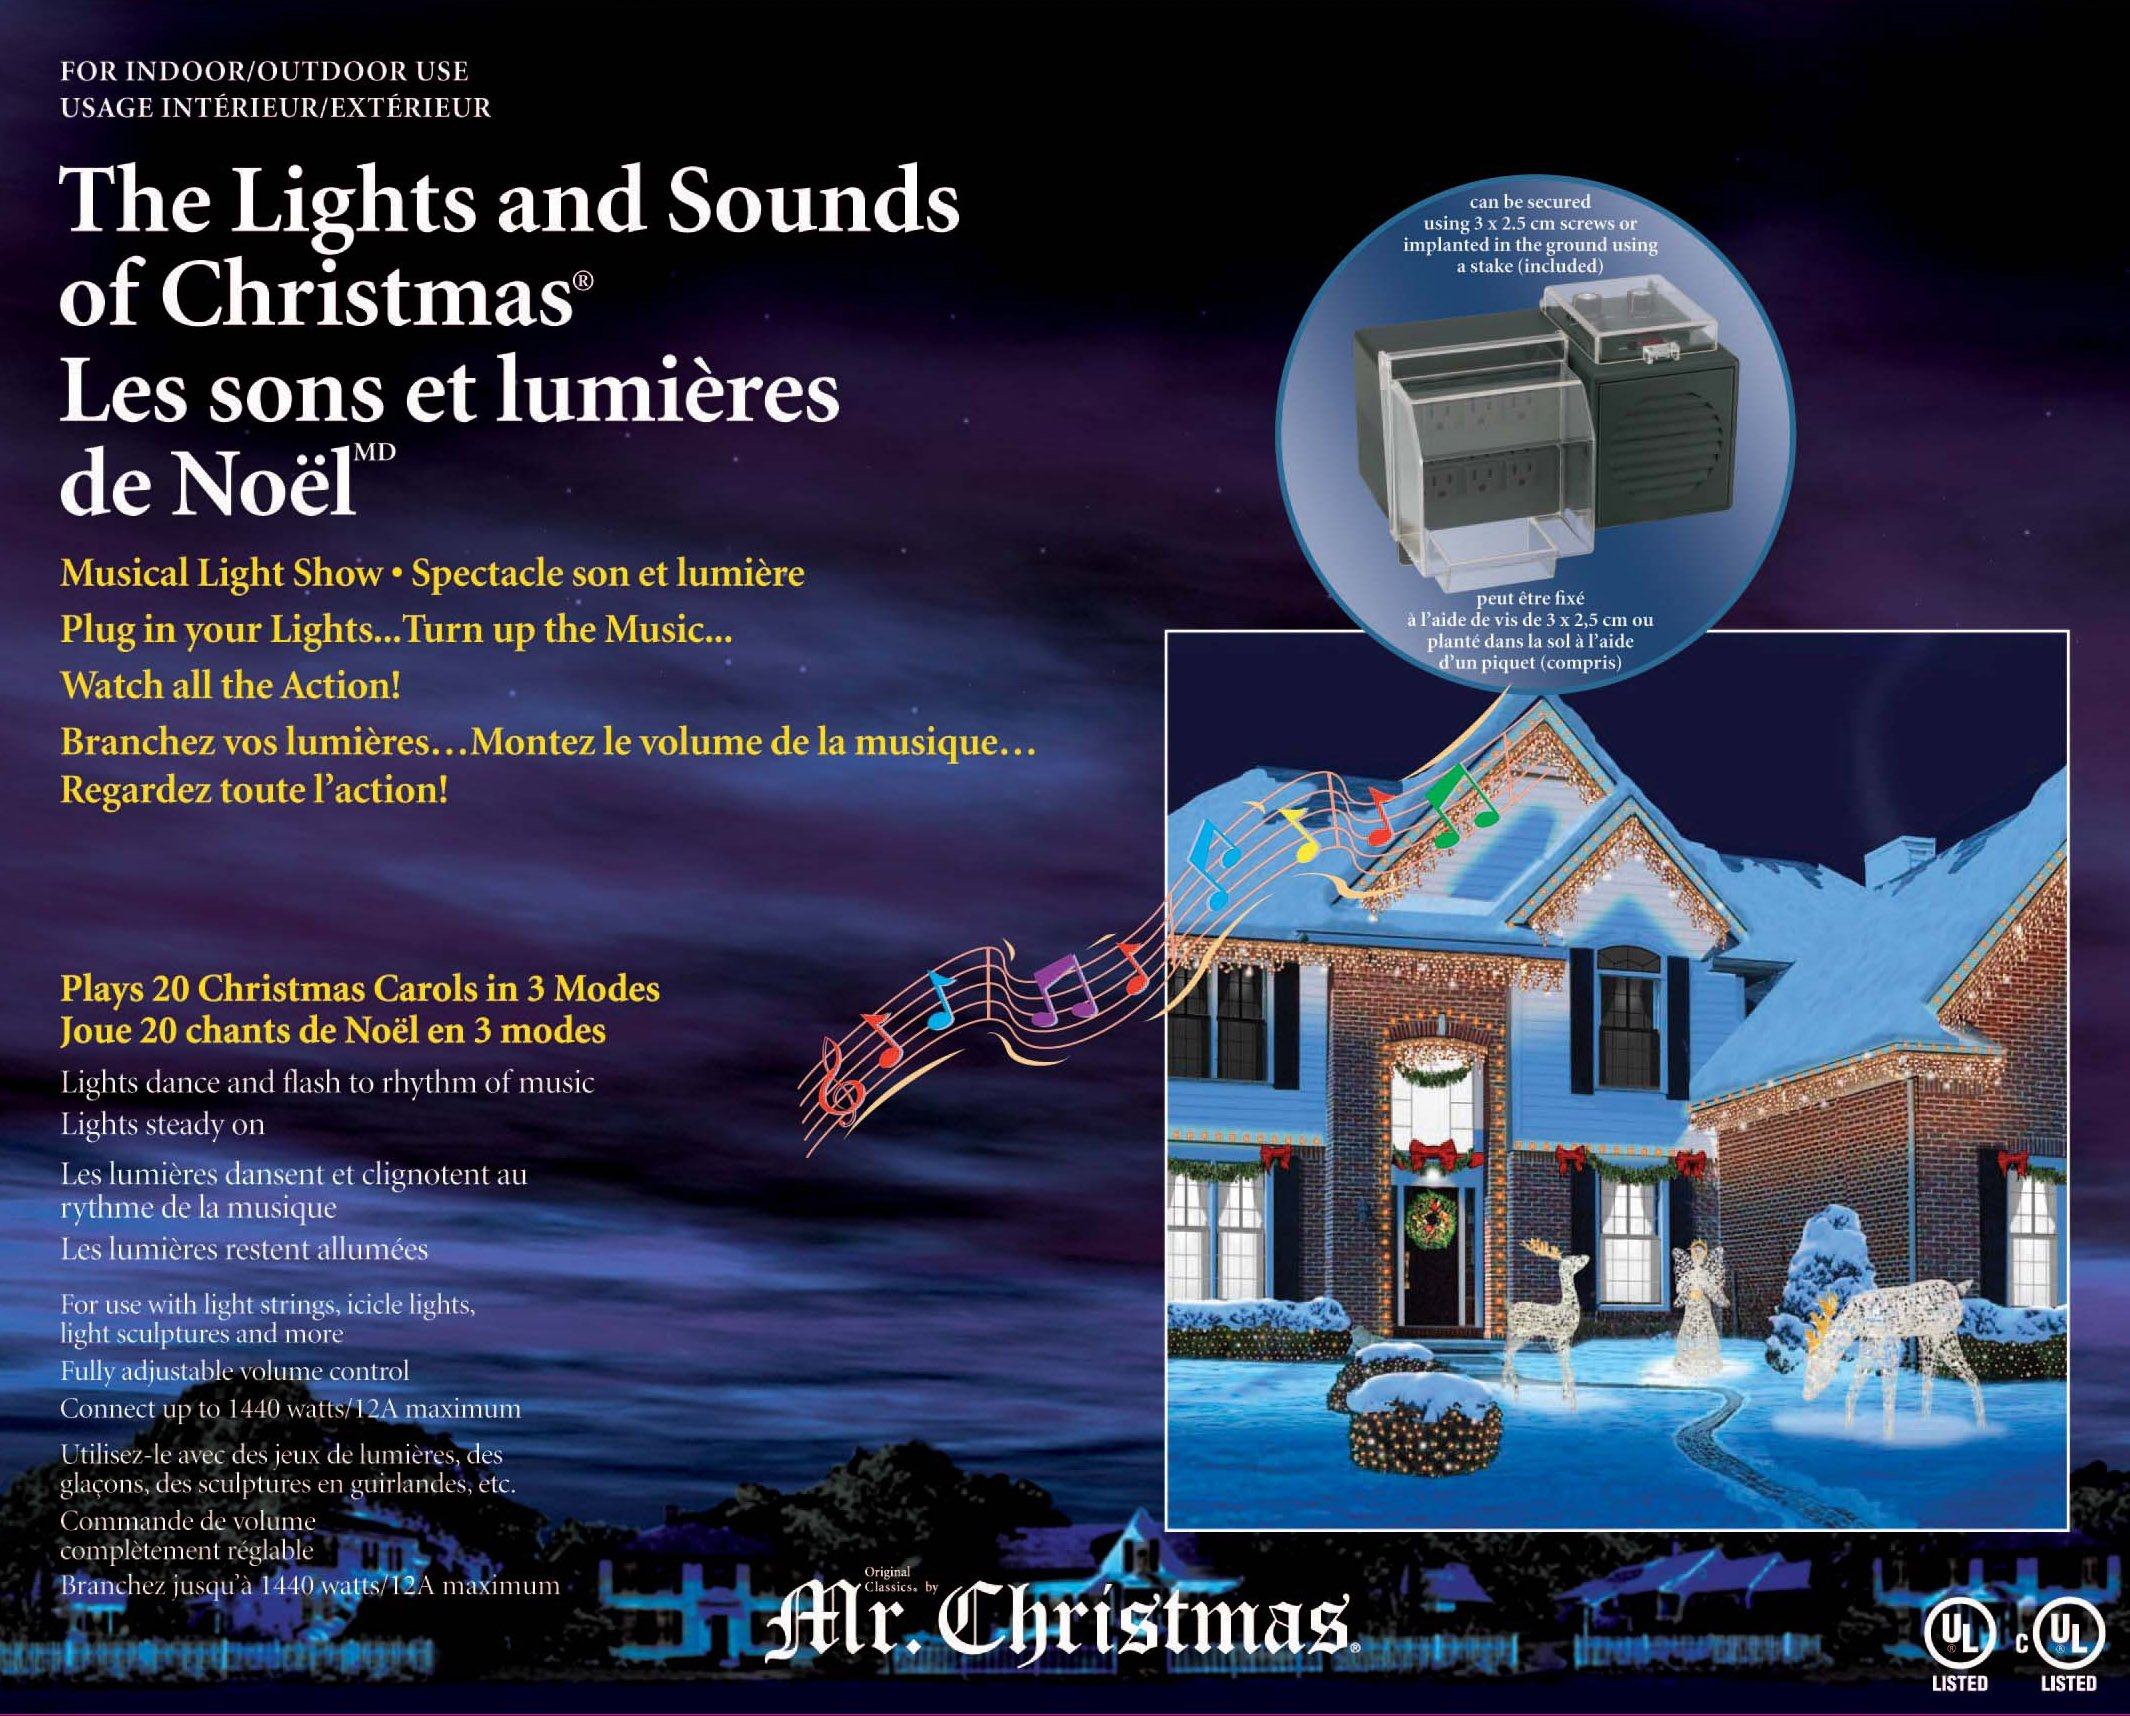 Mr. Christmas Lights and Sounds of Christmas, Outdoor by Mr. Christmas (Image #2)